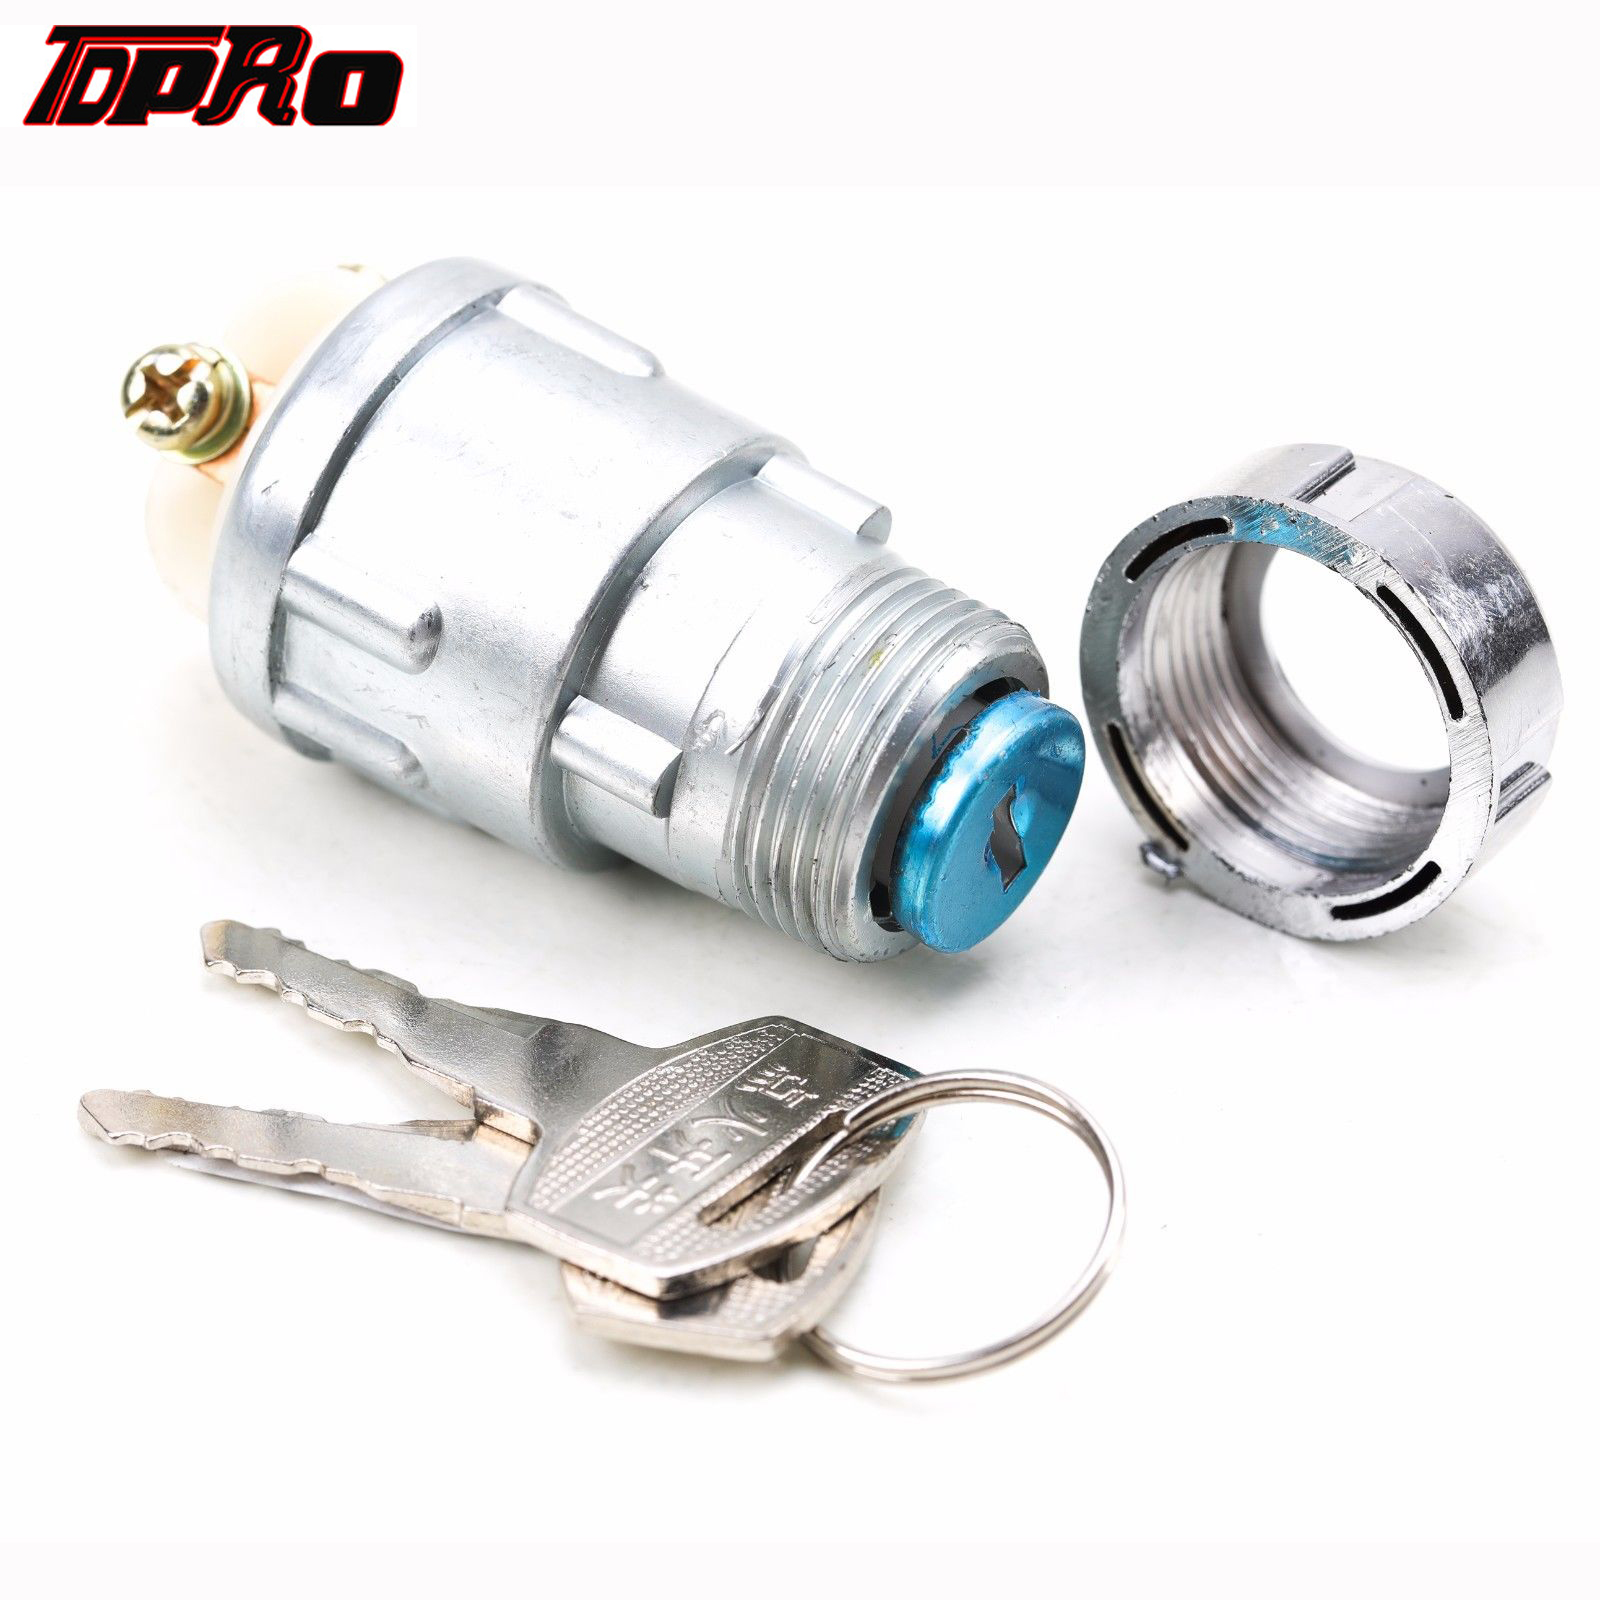 TDPRO Motorcycle 3 Position Ignition Starter Key Switch 2 Keys For Honda Yamaha 200CC 250cc Quad Dirt Bike ATV Buggy GoKart Boat